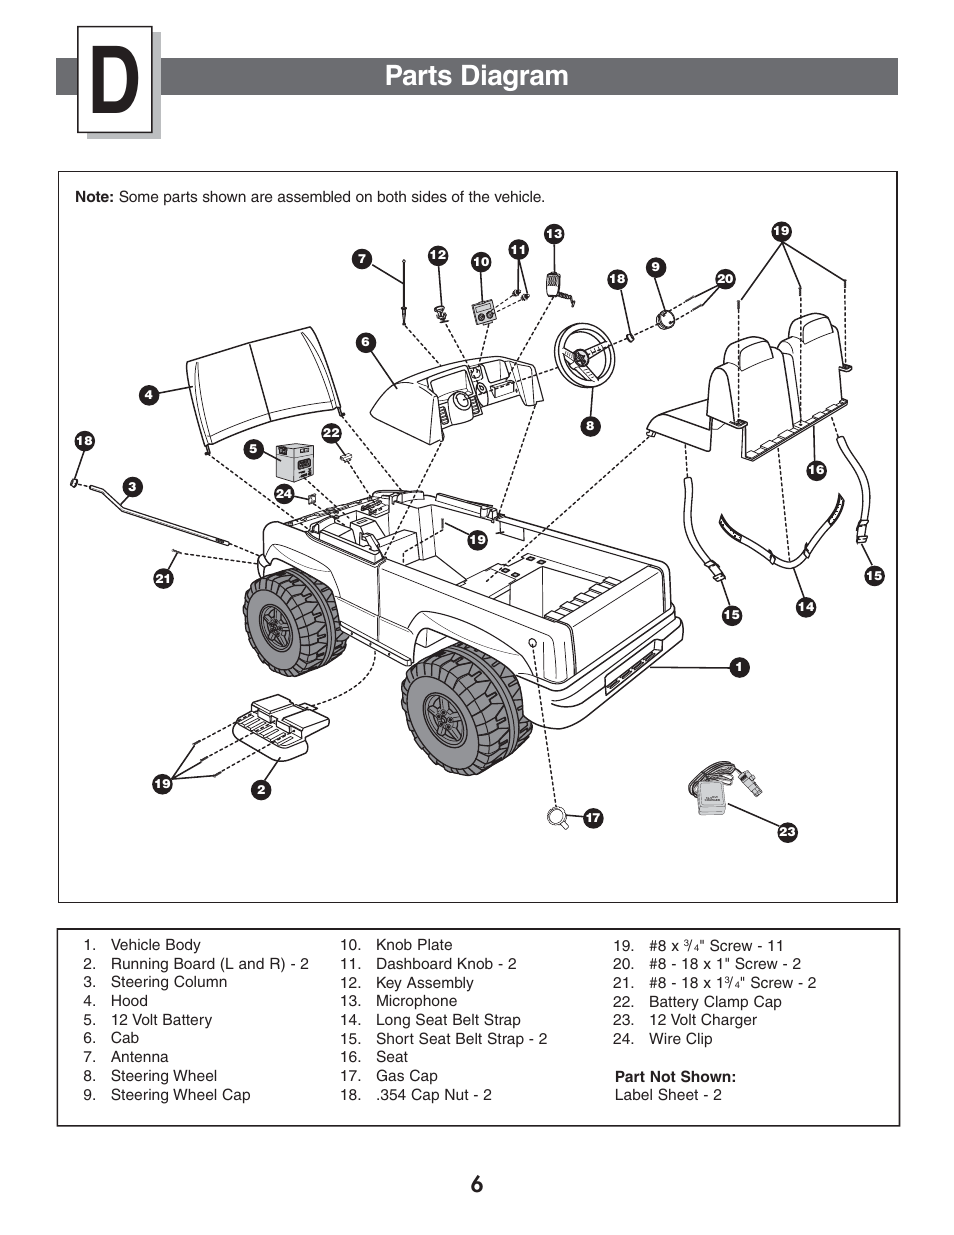 parts diagram fisher price power wheels by fisher price. Black Bedroom Furniture Sets. Home Design Ideas